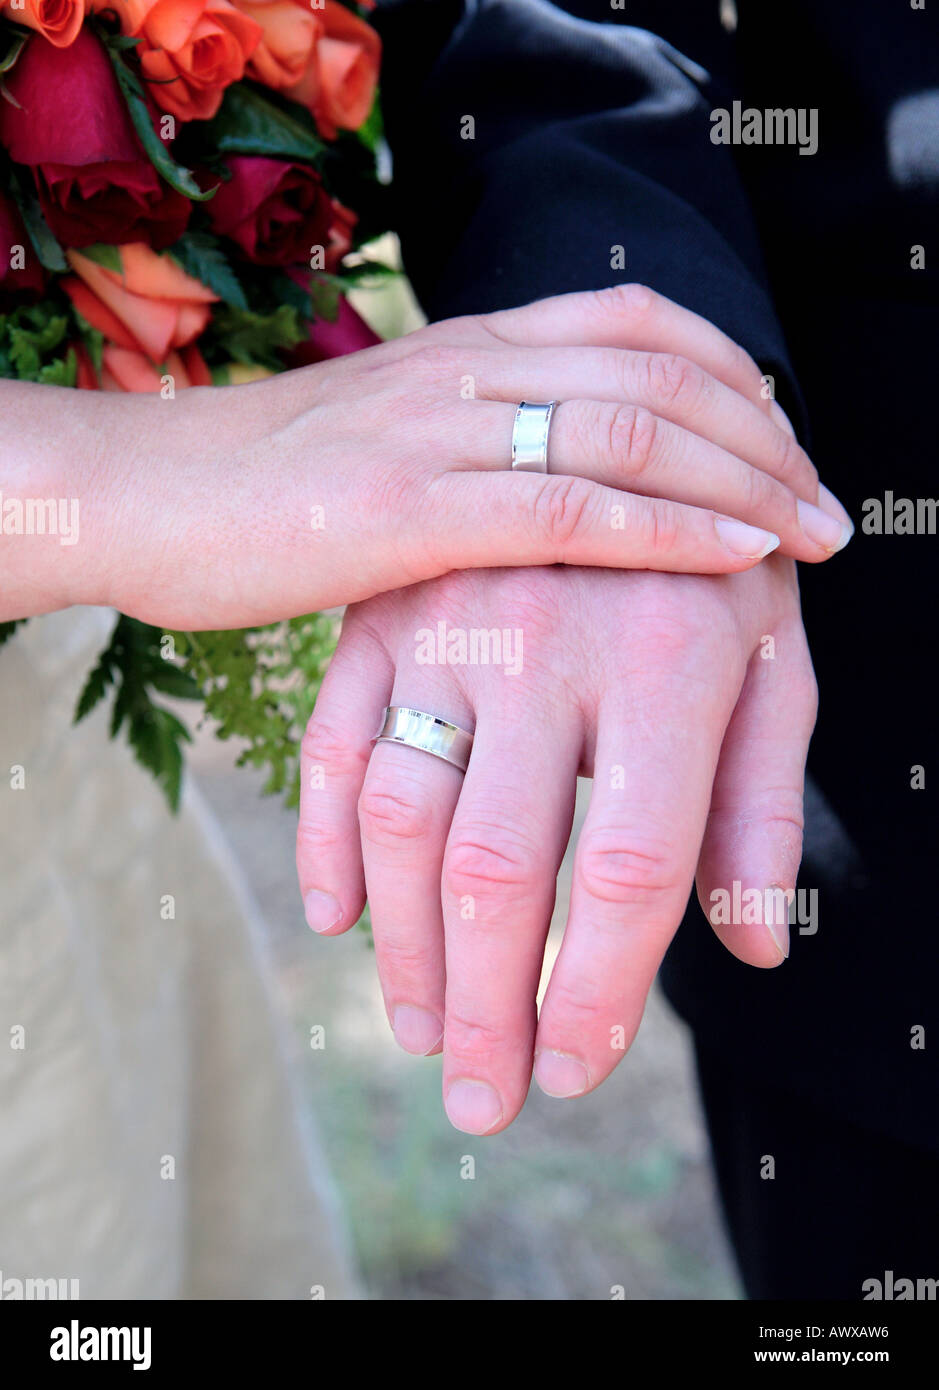 Newly Married Couple Hold Hands Stock Photos & Newly Married Couple ...